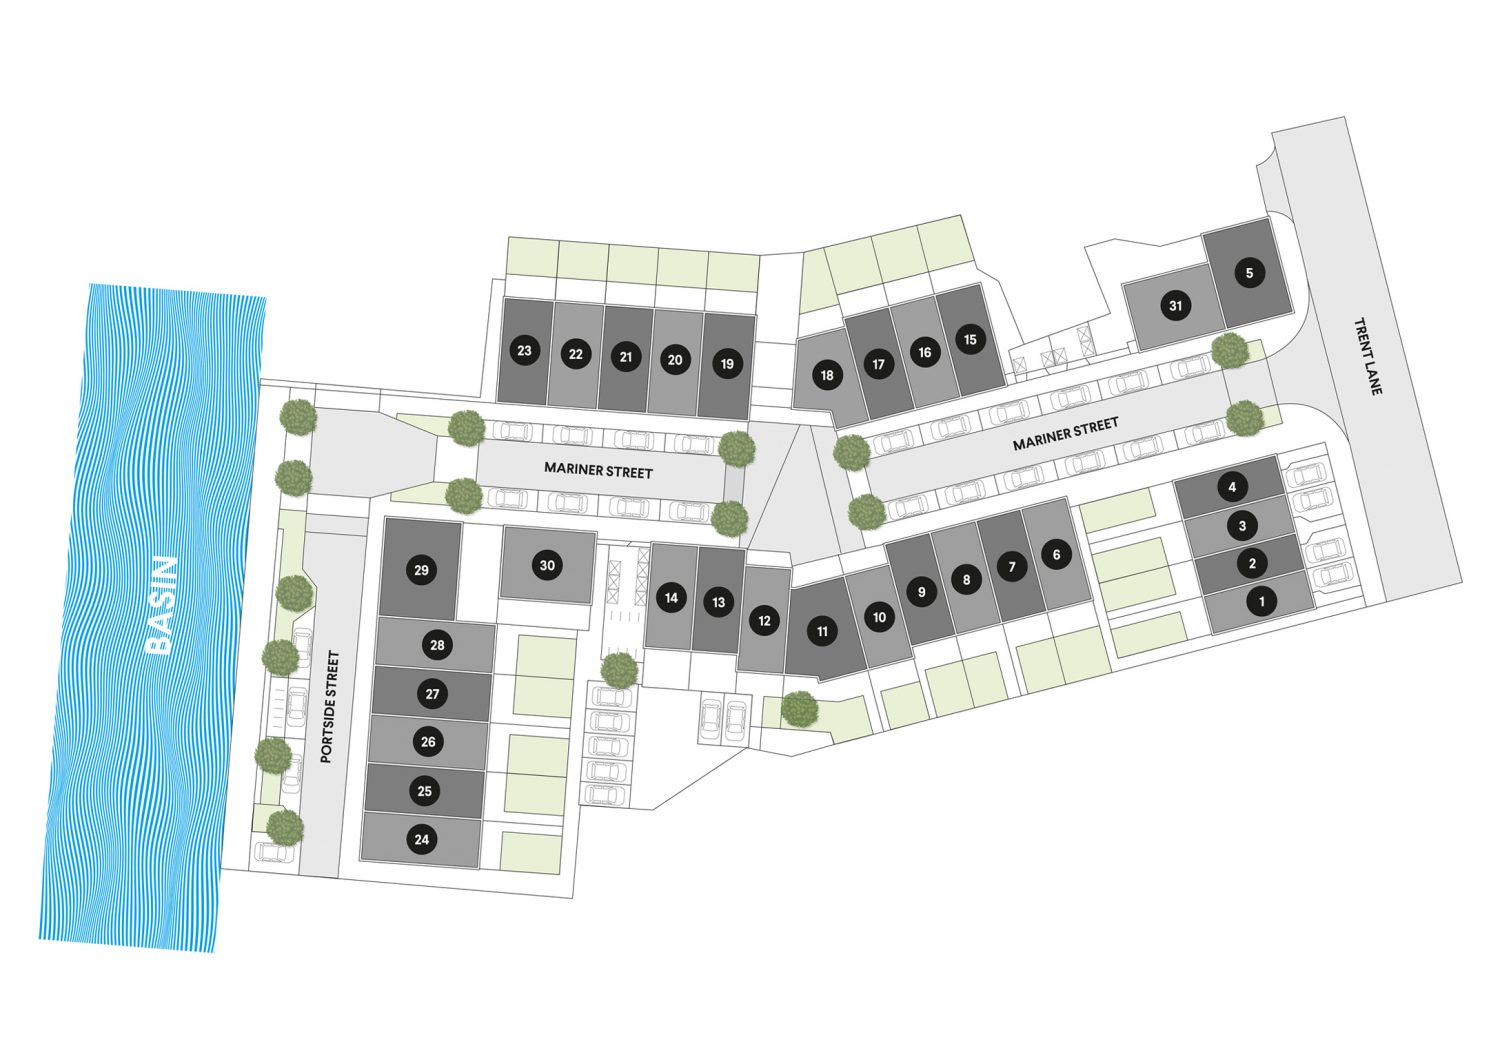 Plot 13 site plan